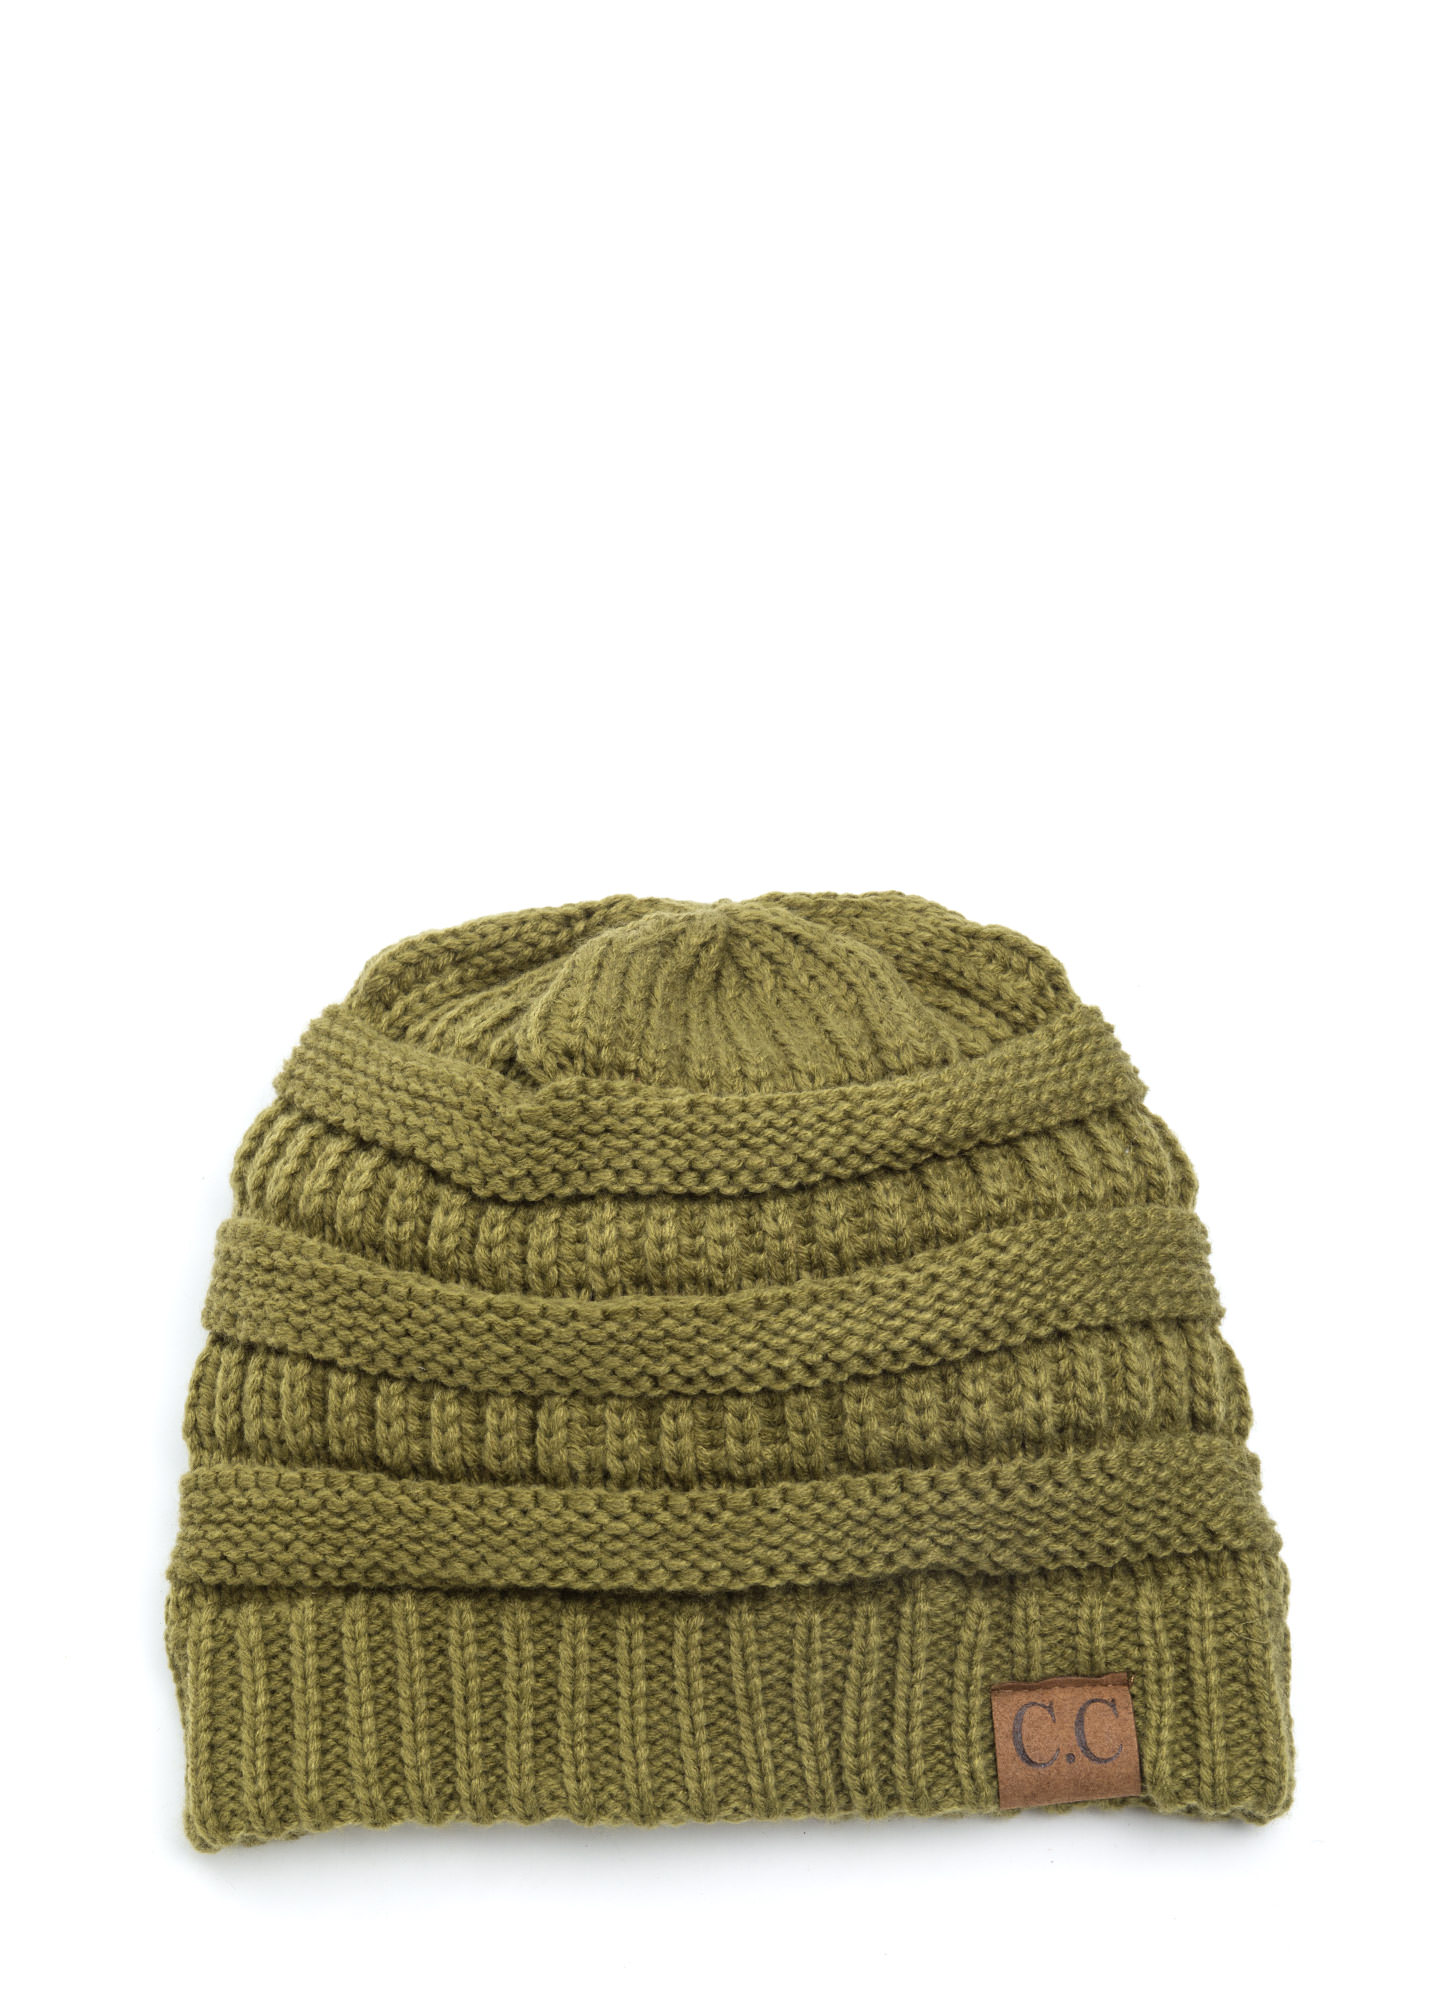 CC Cable Kit Beanie OLIVE